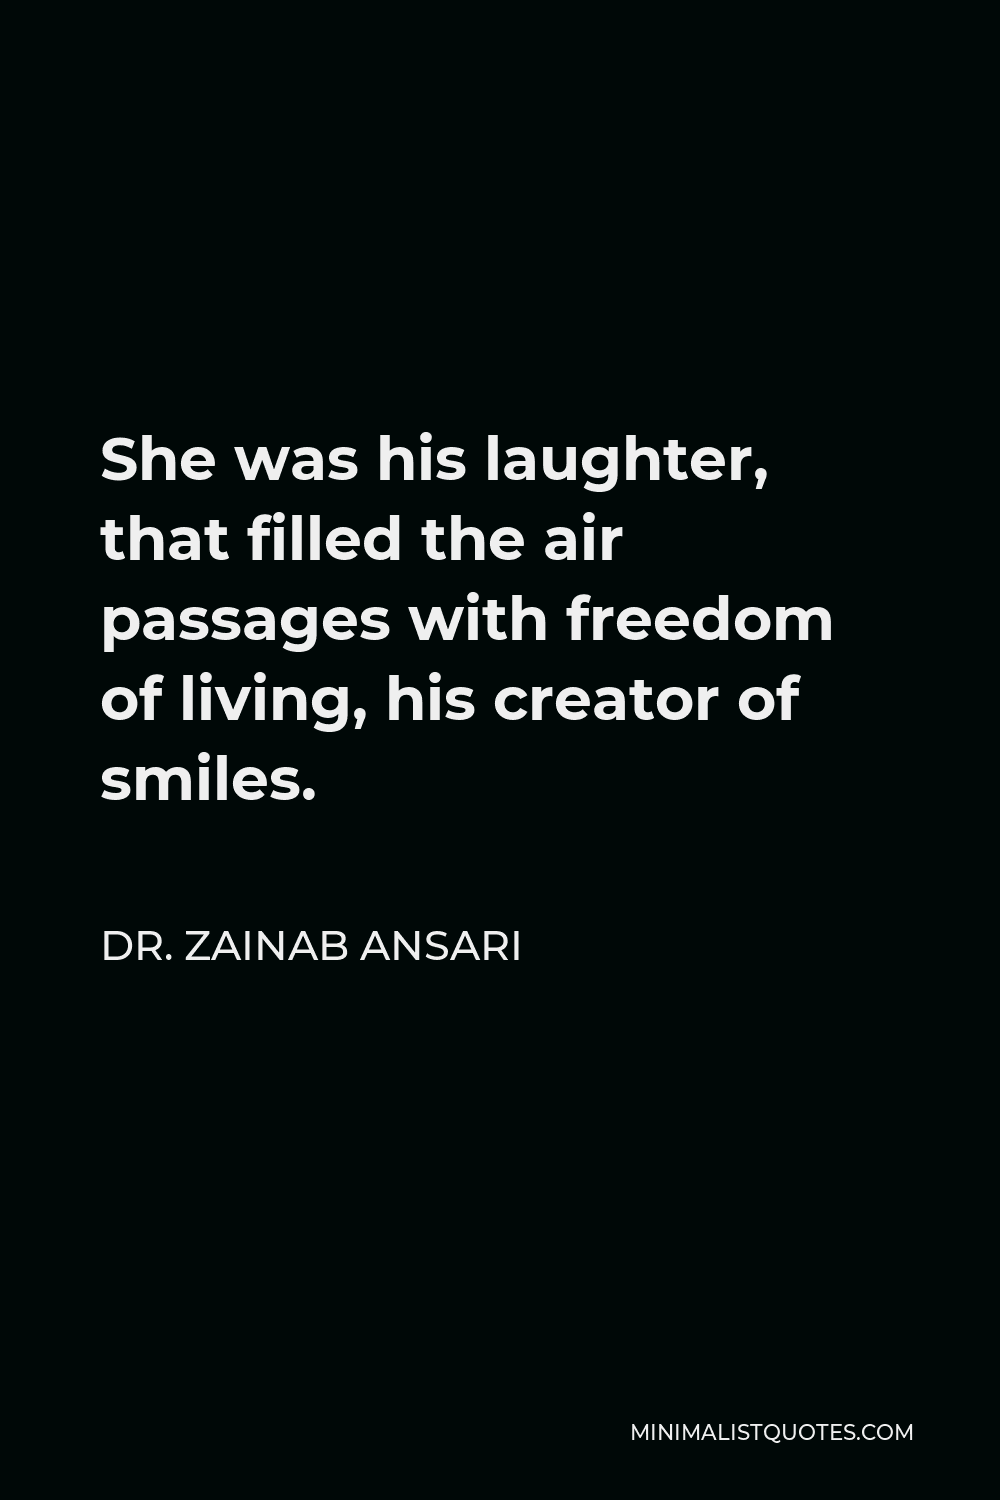 Dr. Zainab Ansari Quote - She was his laughter, that filled the air passages with freedom of living, his creator of smiles.